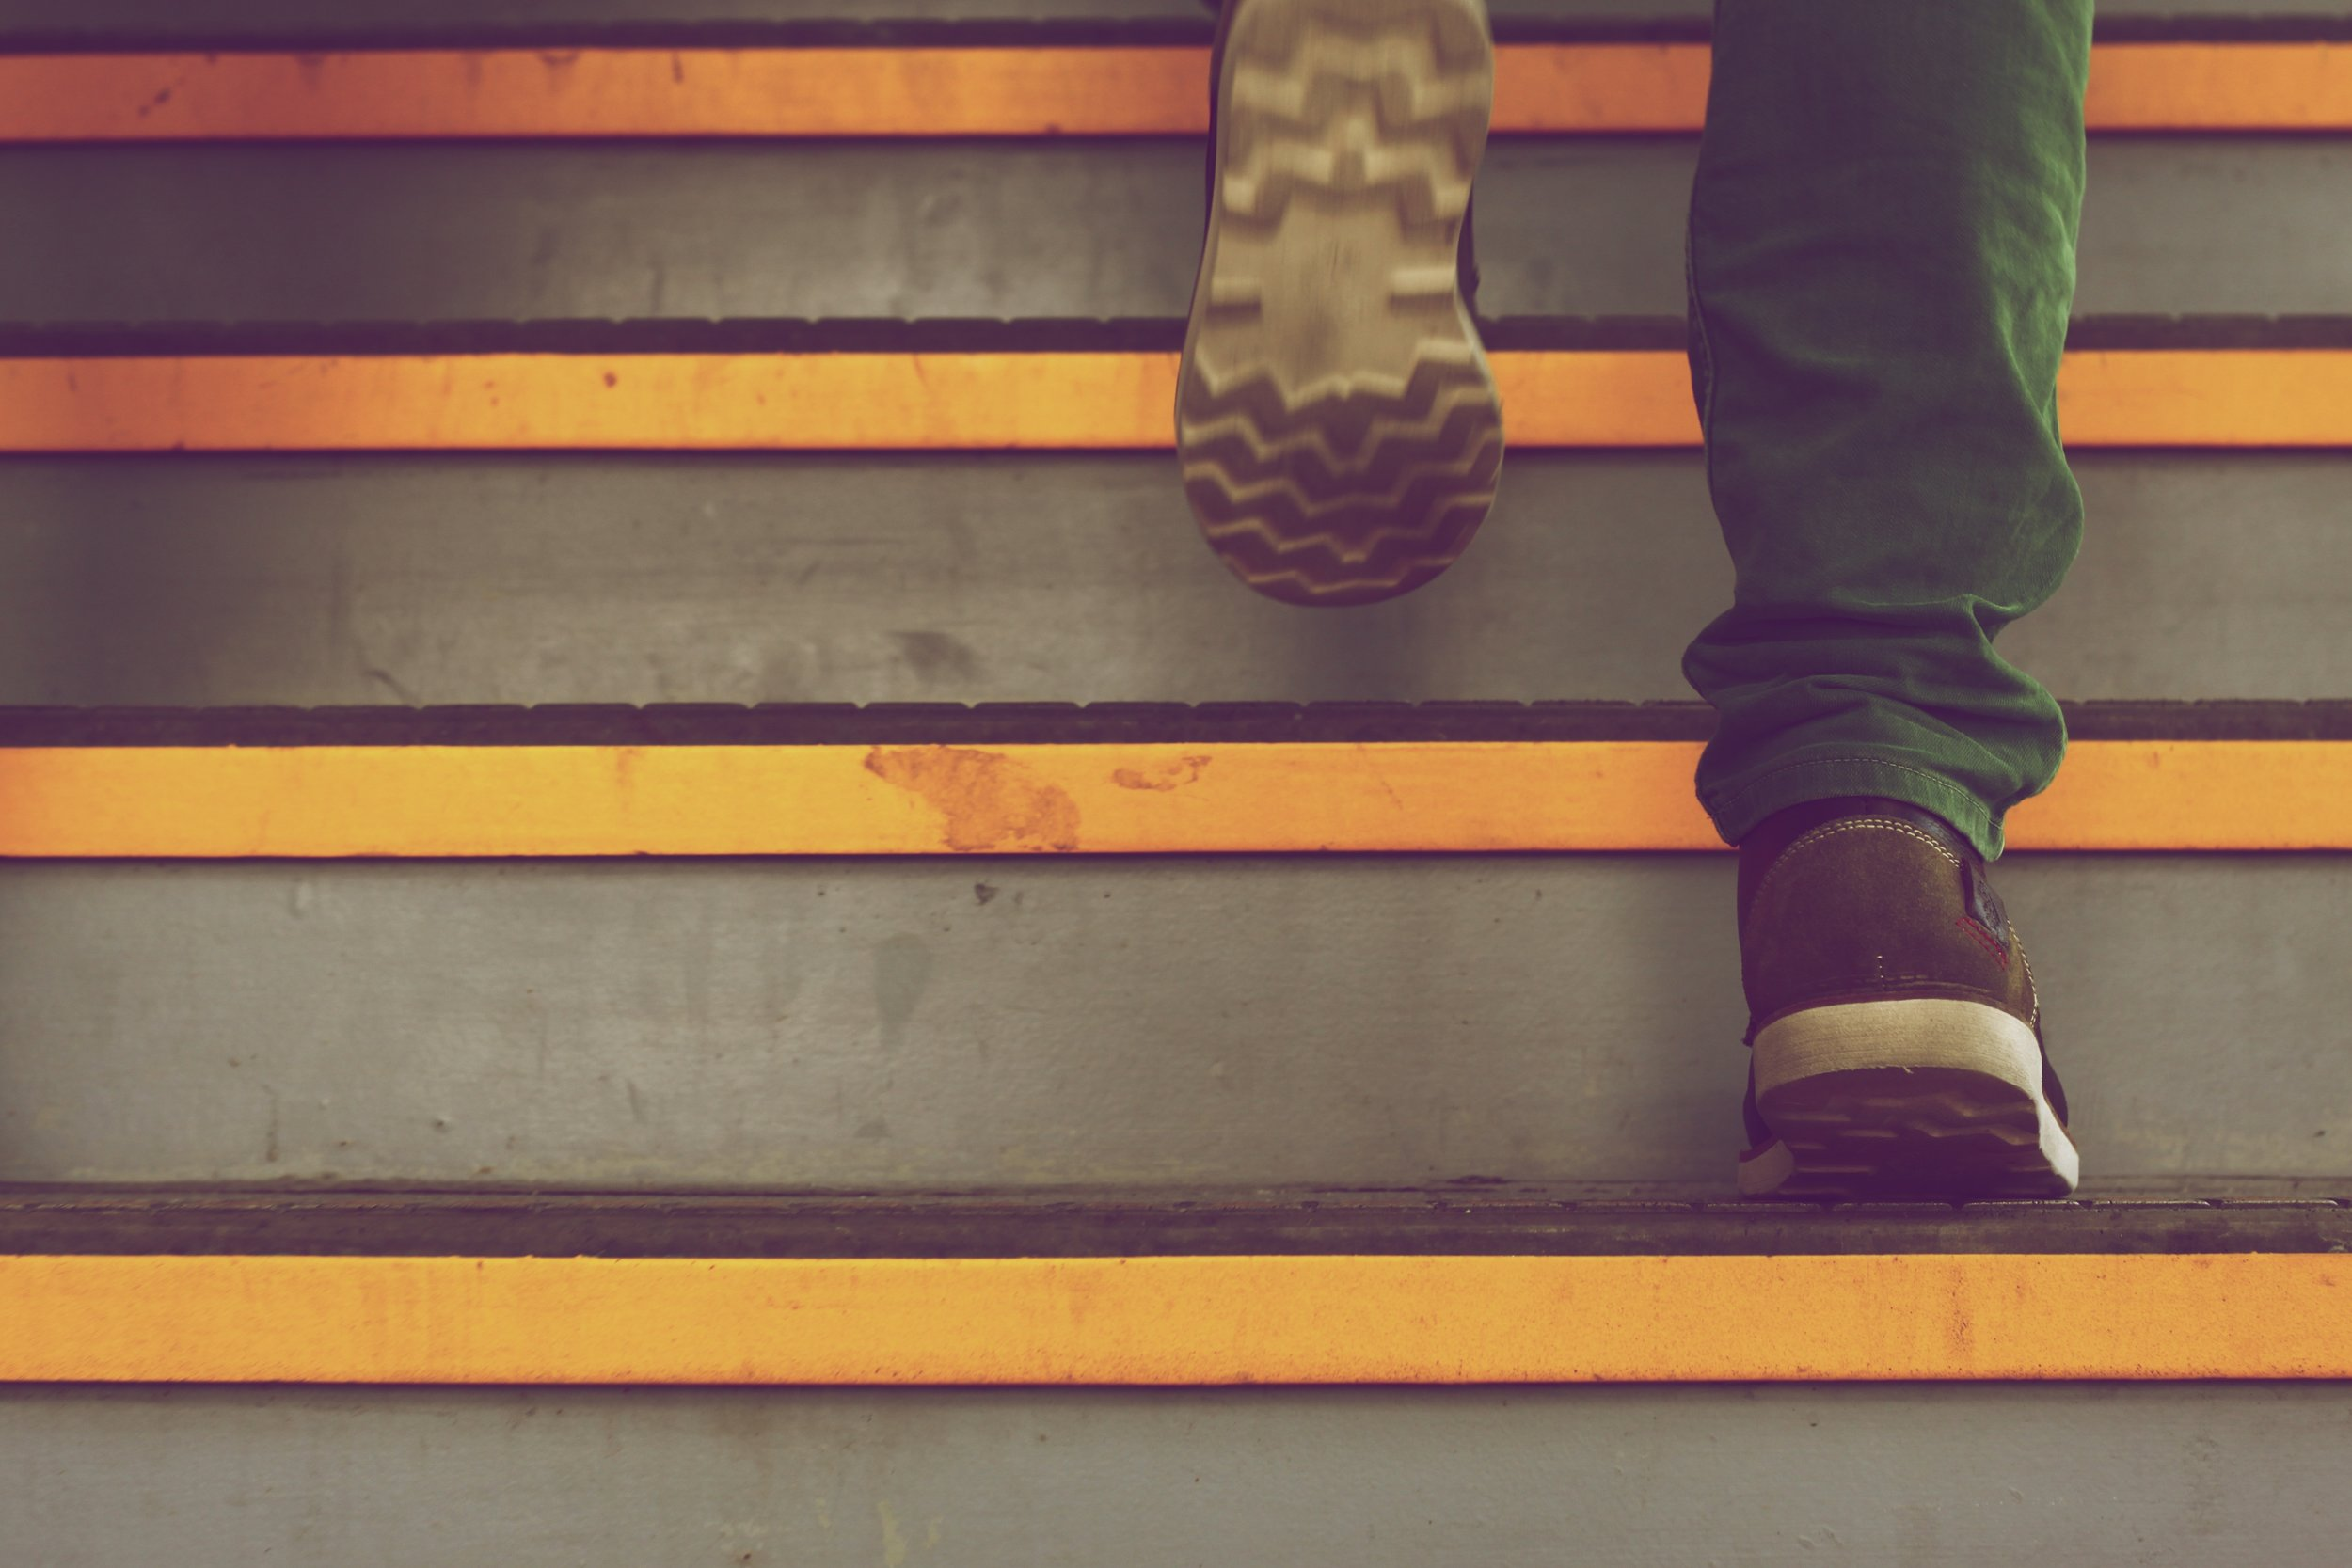 Steps do not overwhelm students